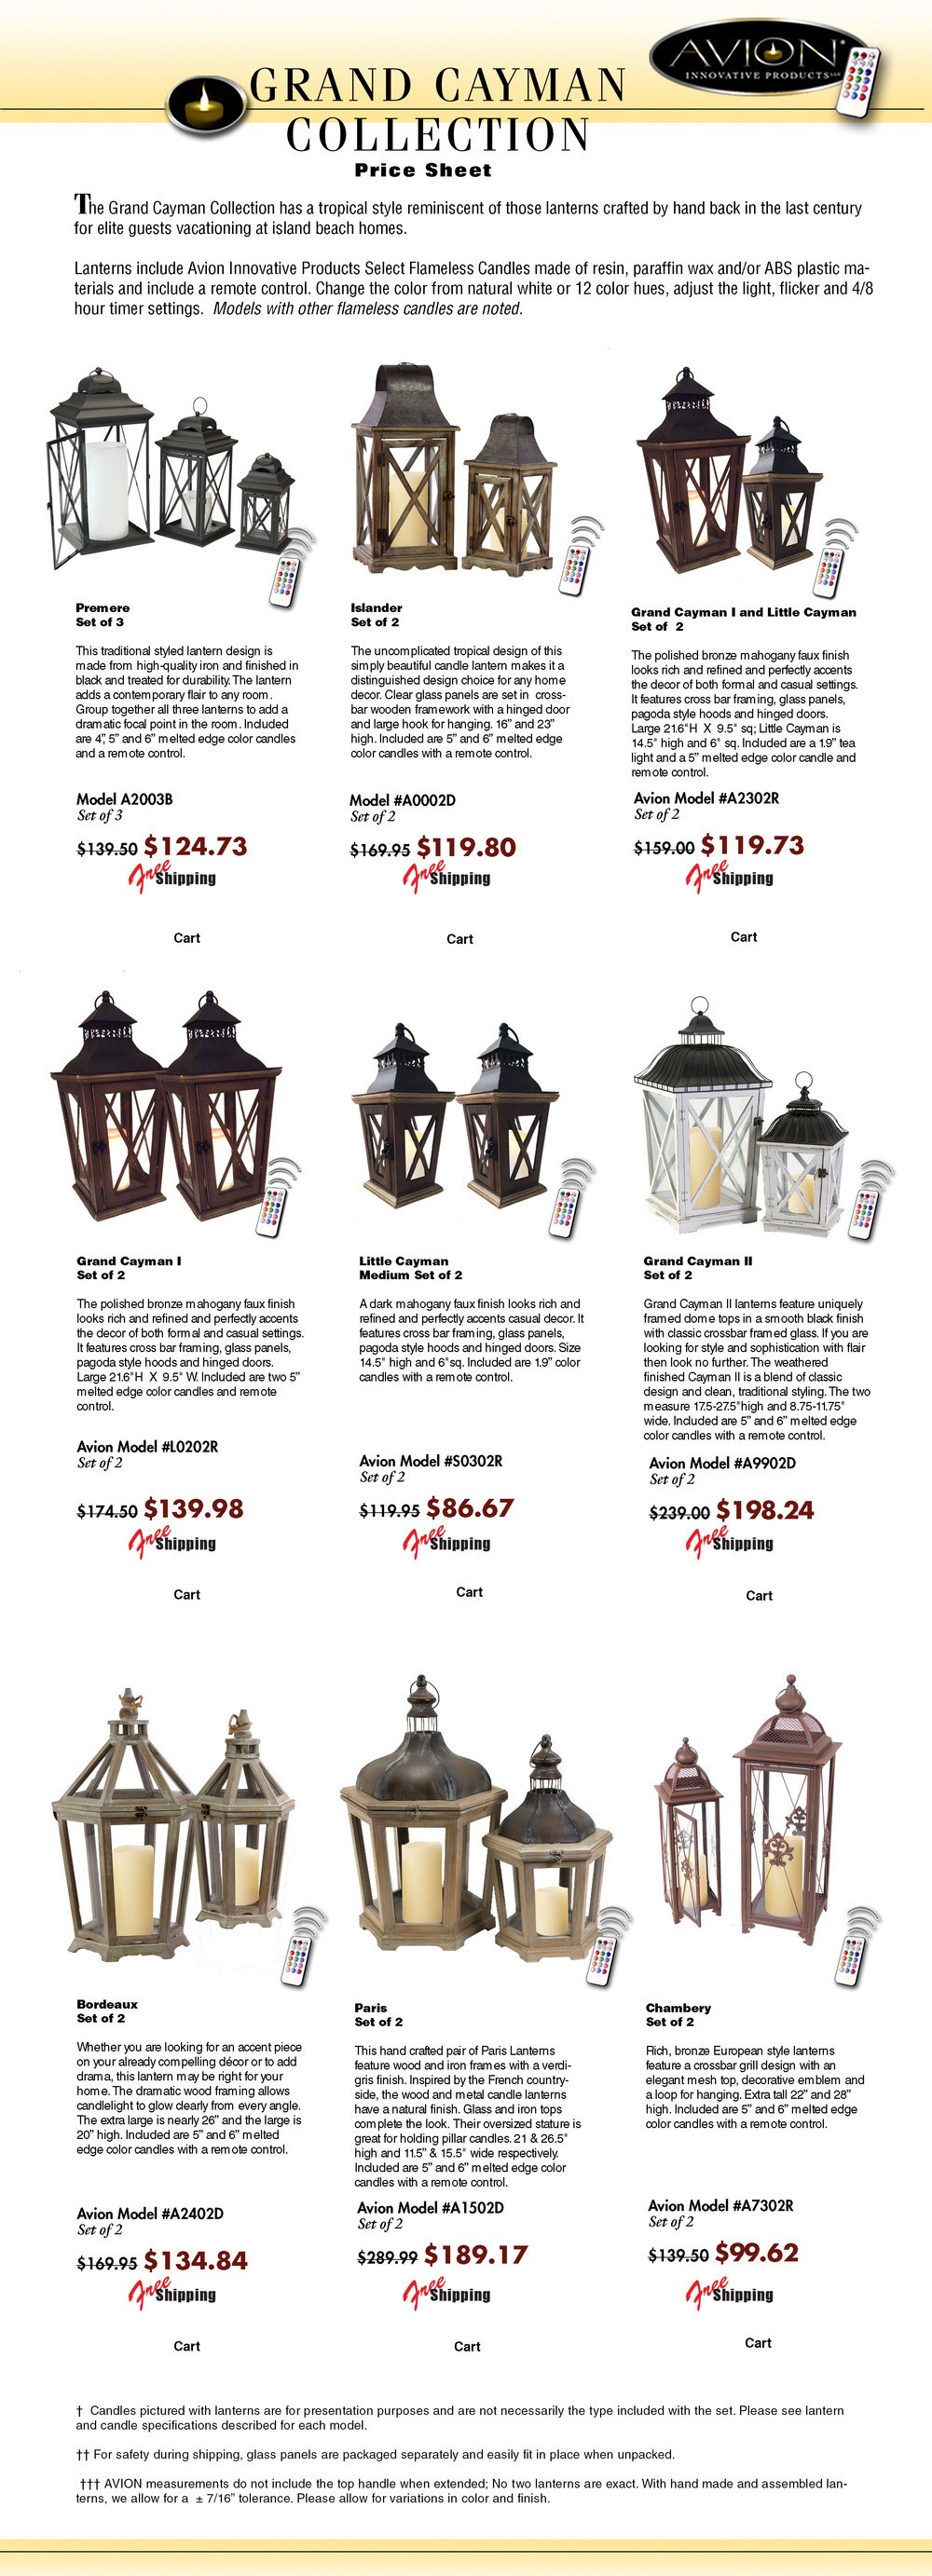 Specification sheet for avioninnovative candle lantern. The Avion collection features quality metal lanterns, wood lanterns, stainless steel lanterns melrose, classic, traditional, modern imax, tropical urban trends, cottage style lanterns like pottery barn, gerson everlasting glow motion flame LED candles; color candles from mooncandles, Kohree, like luminara, candle lamps plus wax. The package price list includes LED battery operated candles, flameless candles, a remote control timer, candle change colors 12 different colors by remote